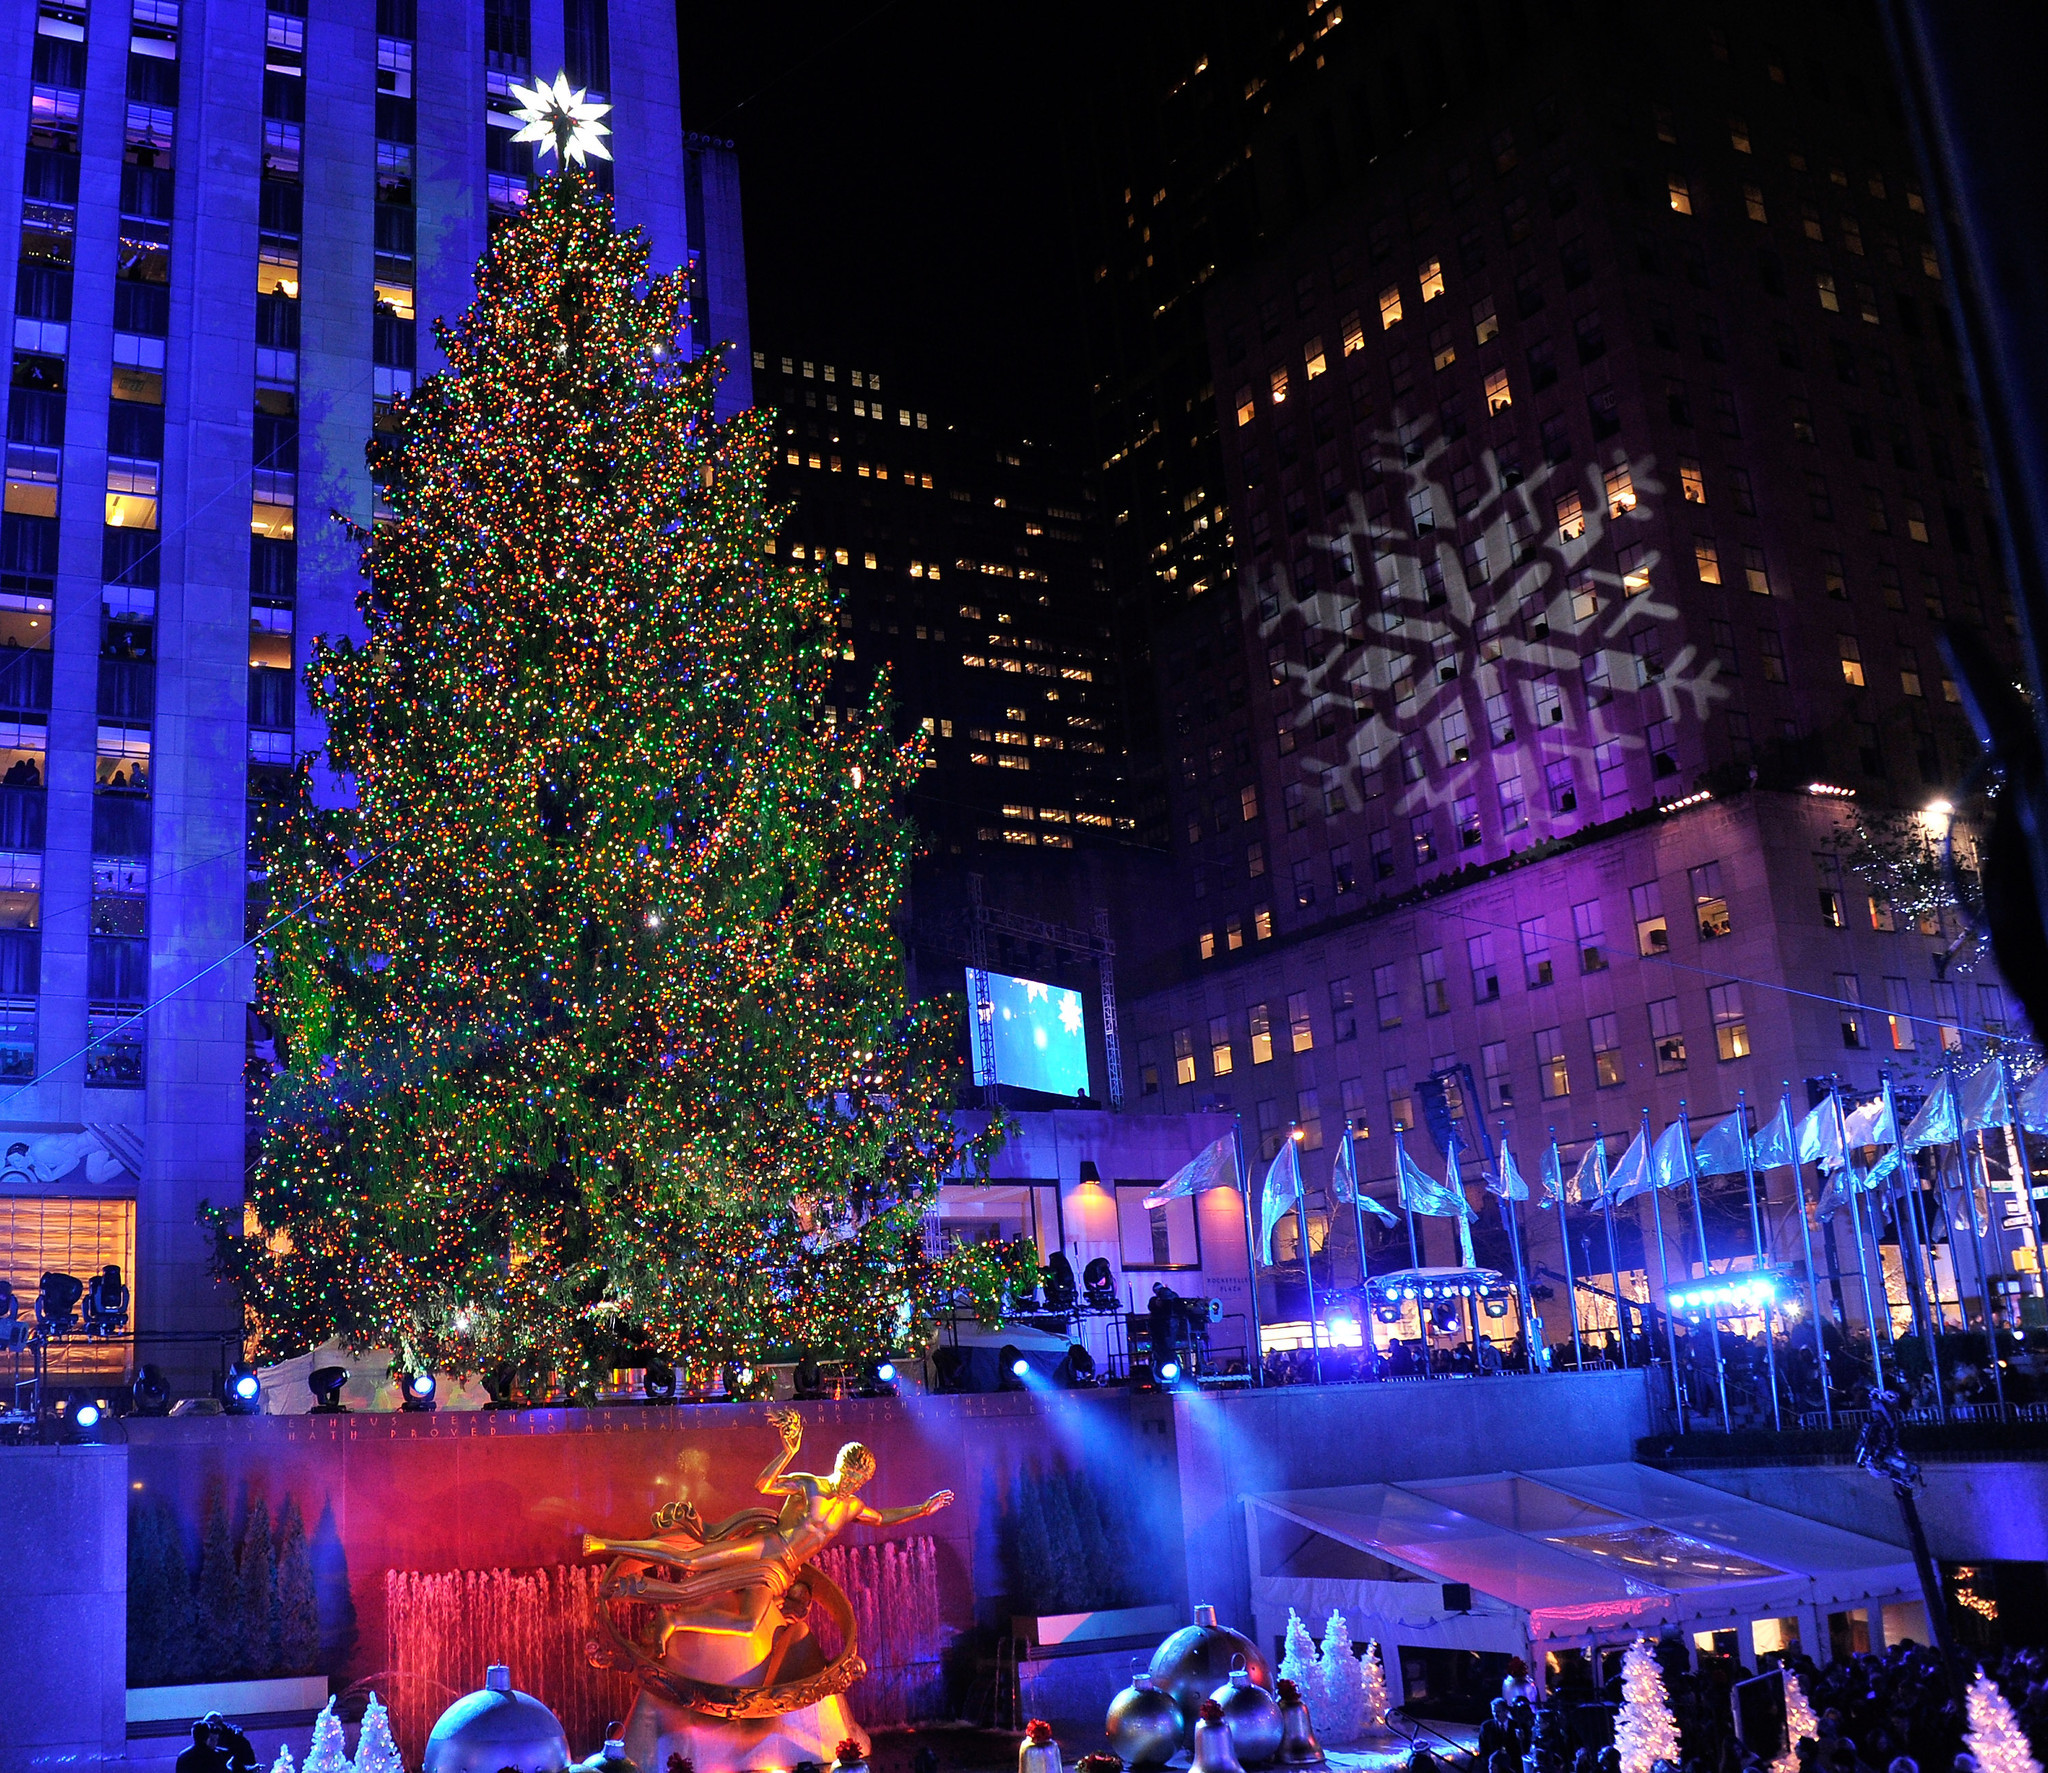 Pictures: Holiday lights from around the globe - Christmas in New York: 80th annual Rockefeller Center Christmas Tree Lighting Ceremony